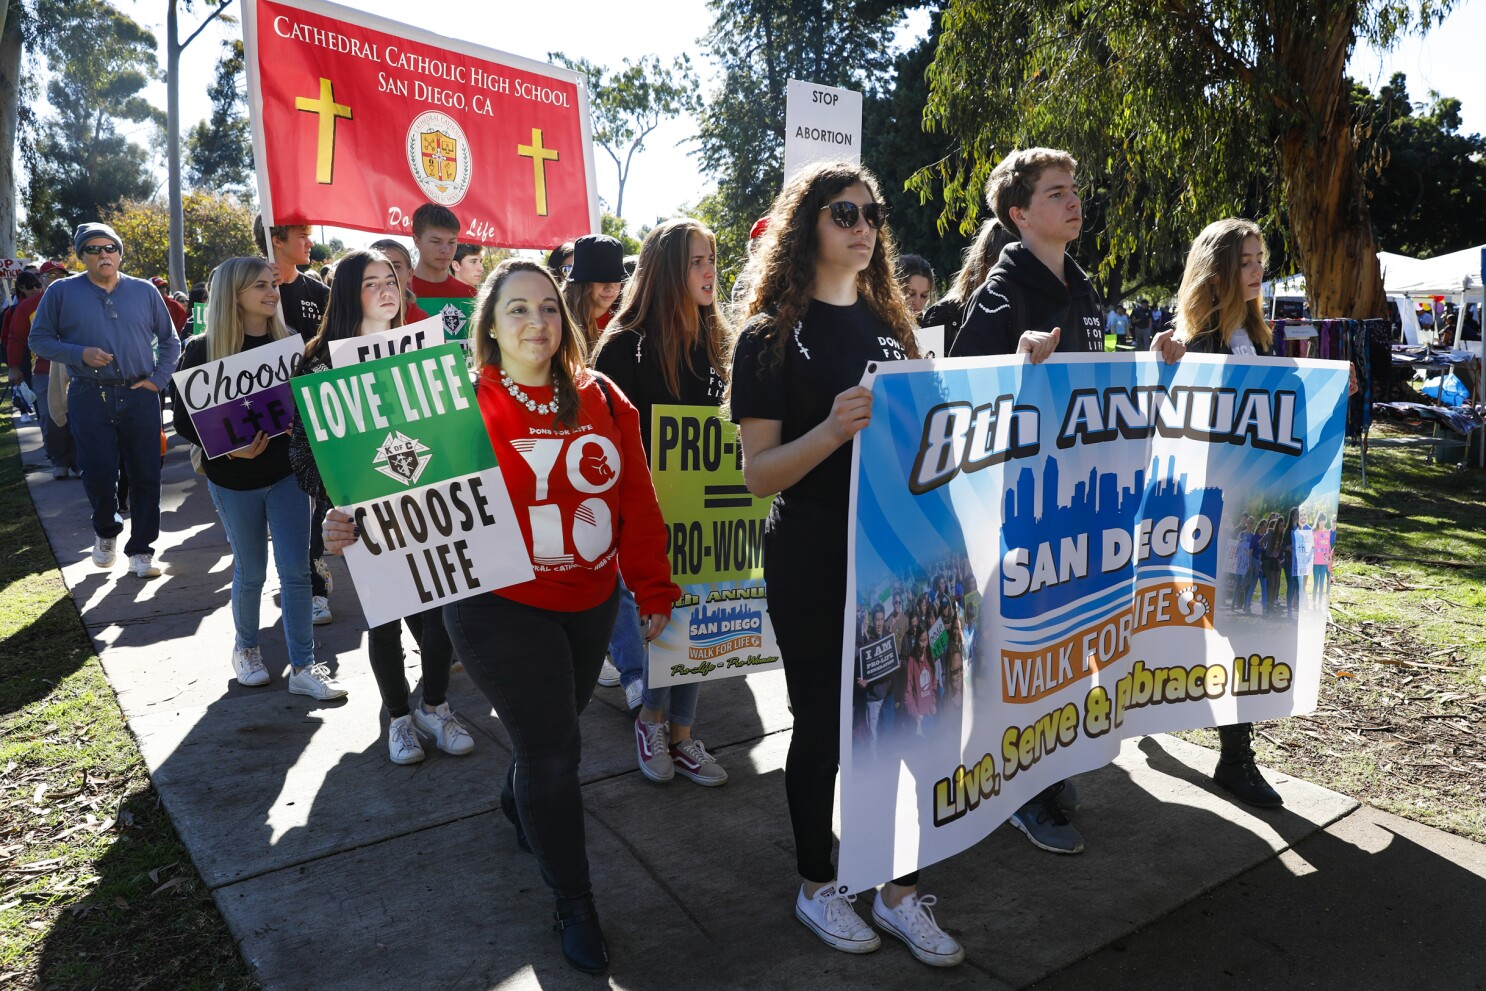 Abortion opponents celebrate 'the beauty and the gift of life' at 8th Annual Walk for Life